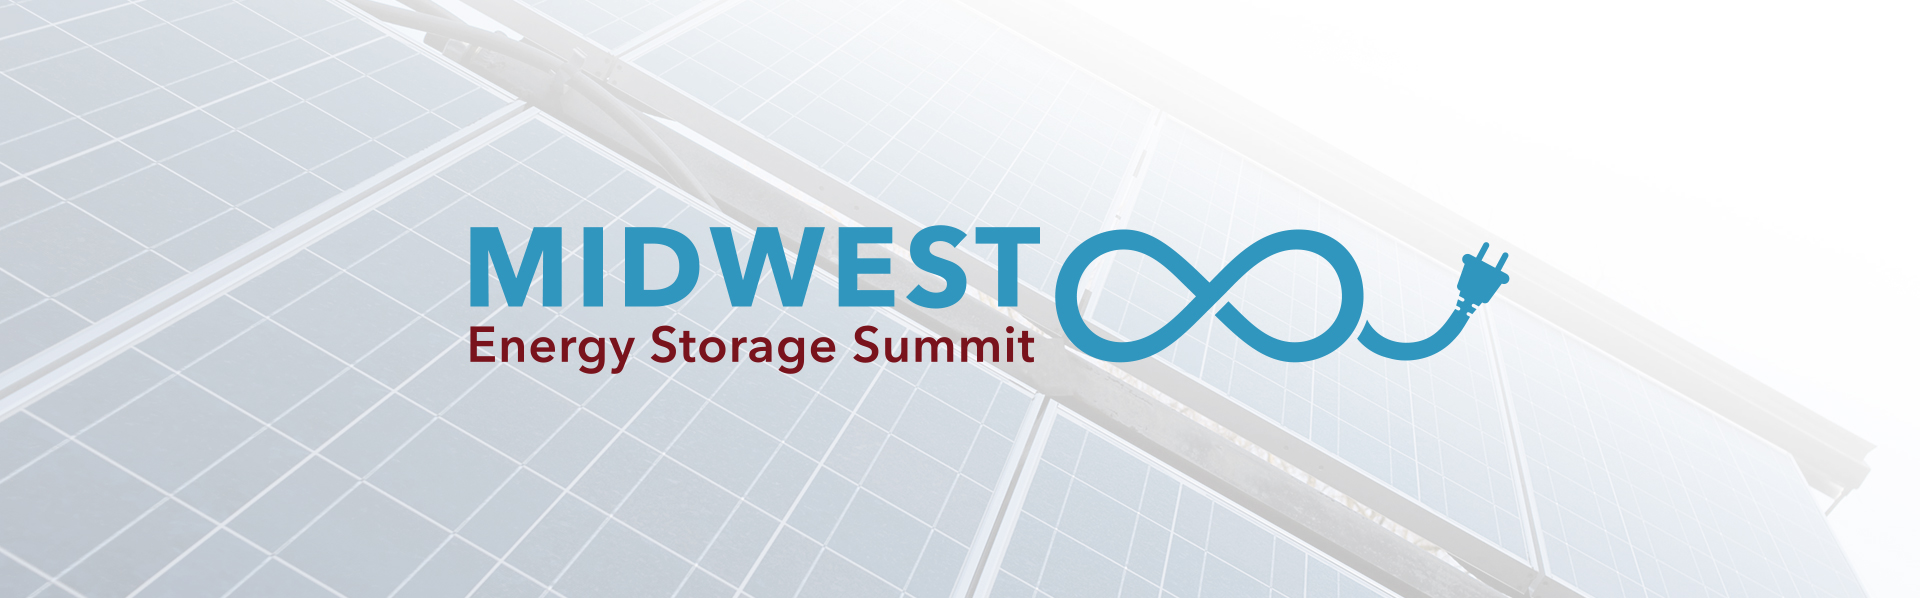 Etonnant ... Representing Energy Leaders From Industry, The Public Sector, Academia,  And Non Profits. The Goal Of The Midwest Energy Storage Summit Is To Gather  ...